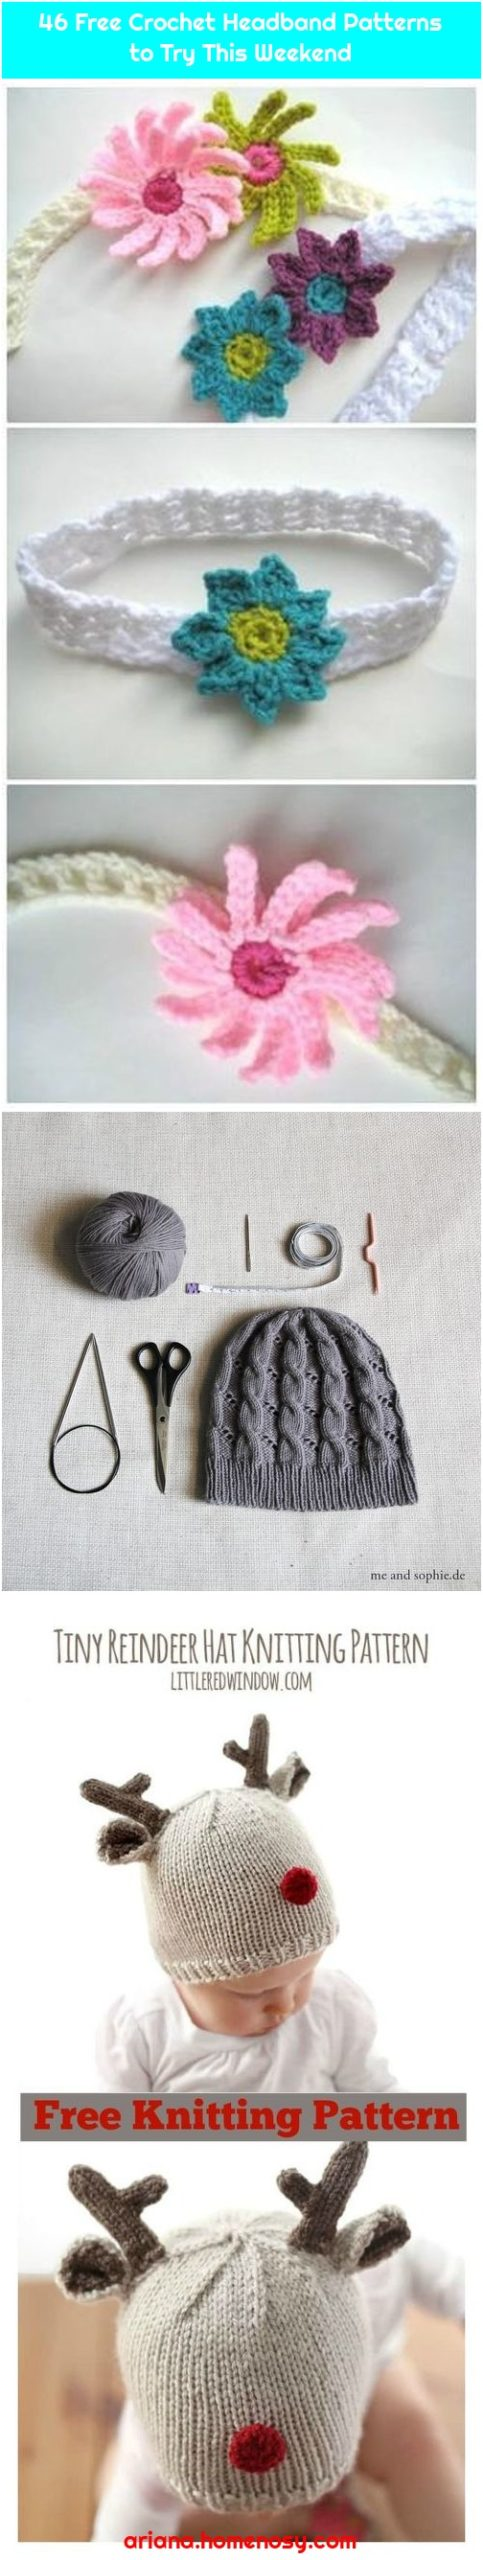 46 Free Crochet Headband Patterns to Try This Weekend